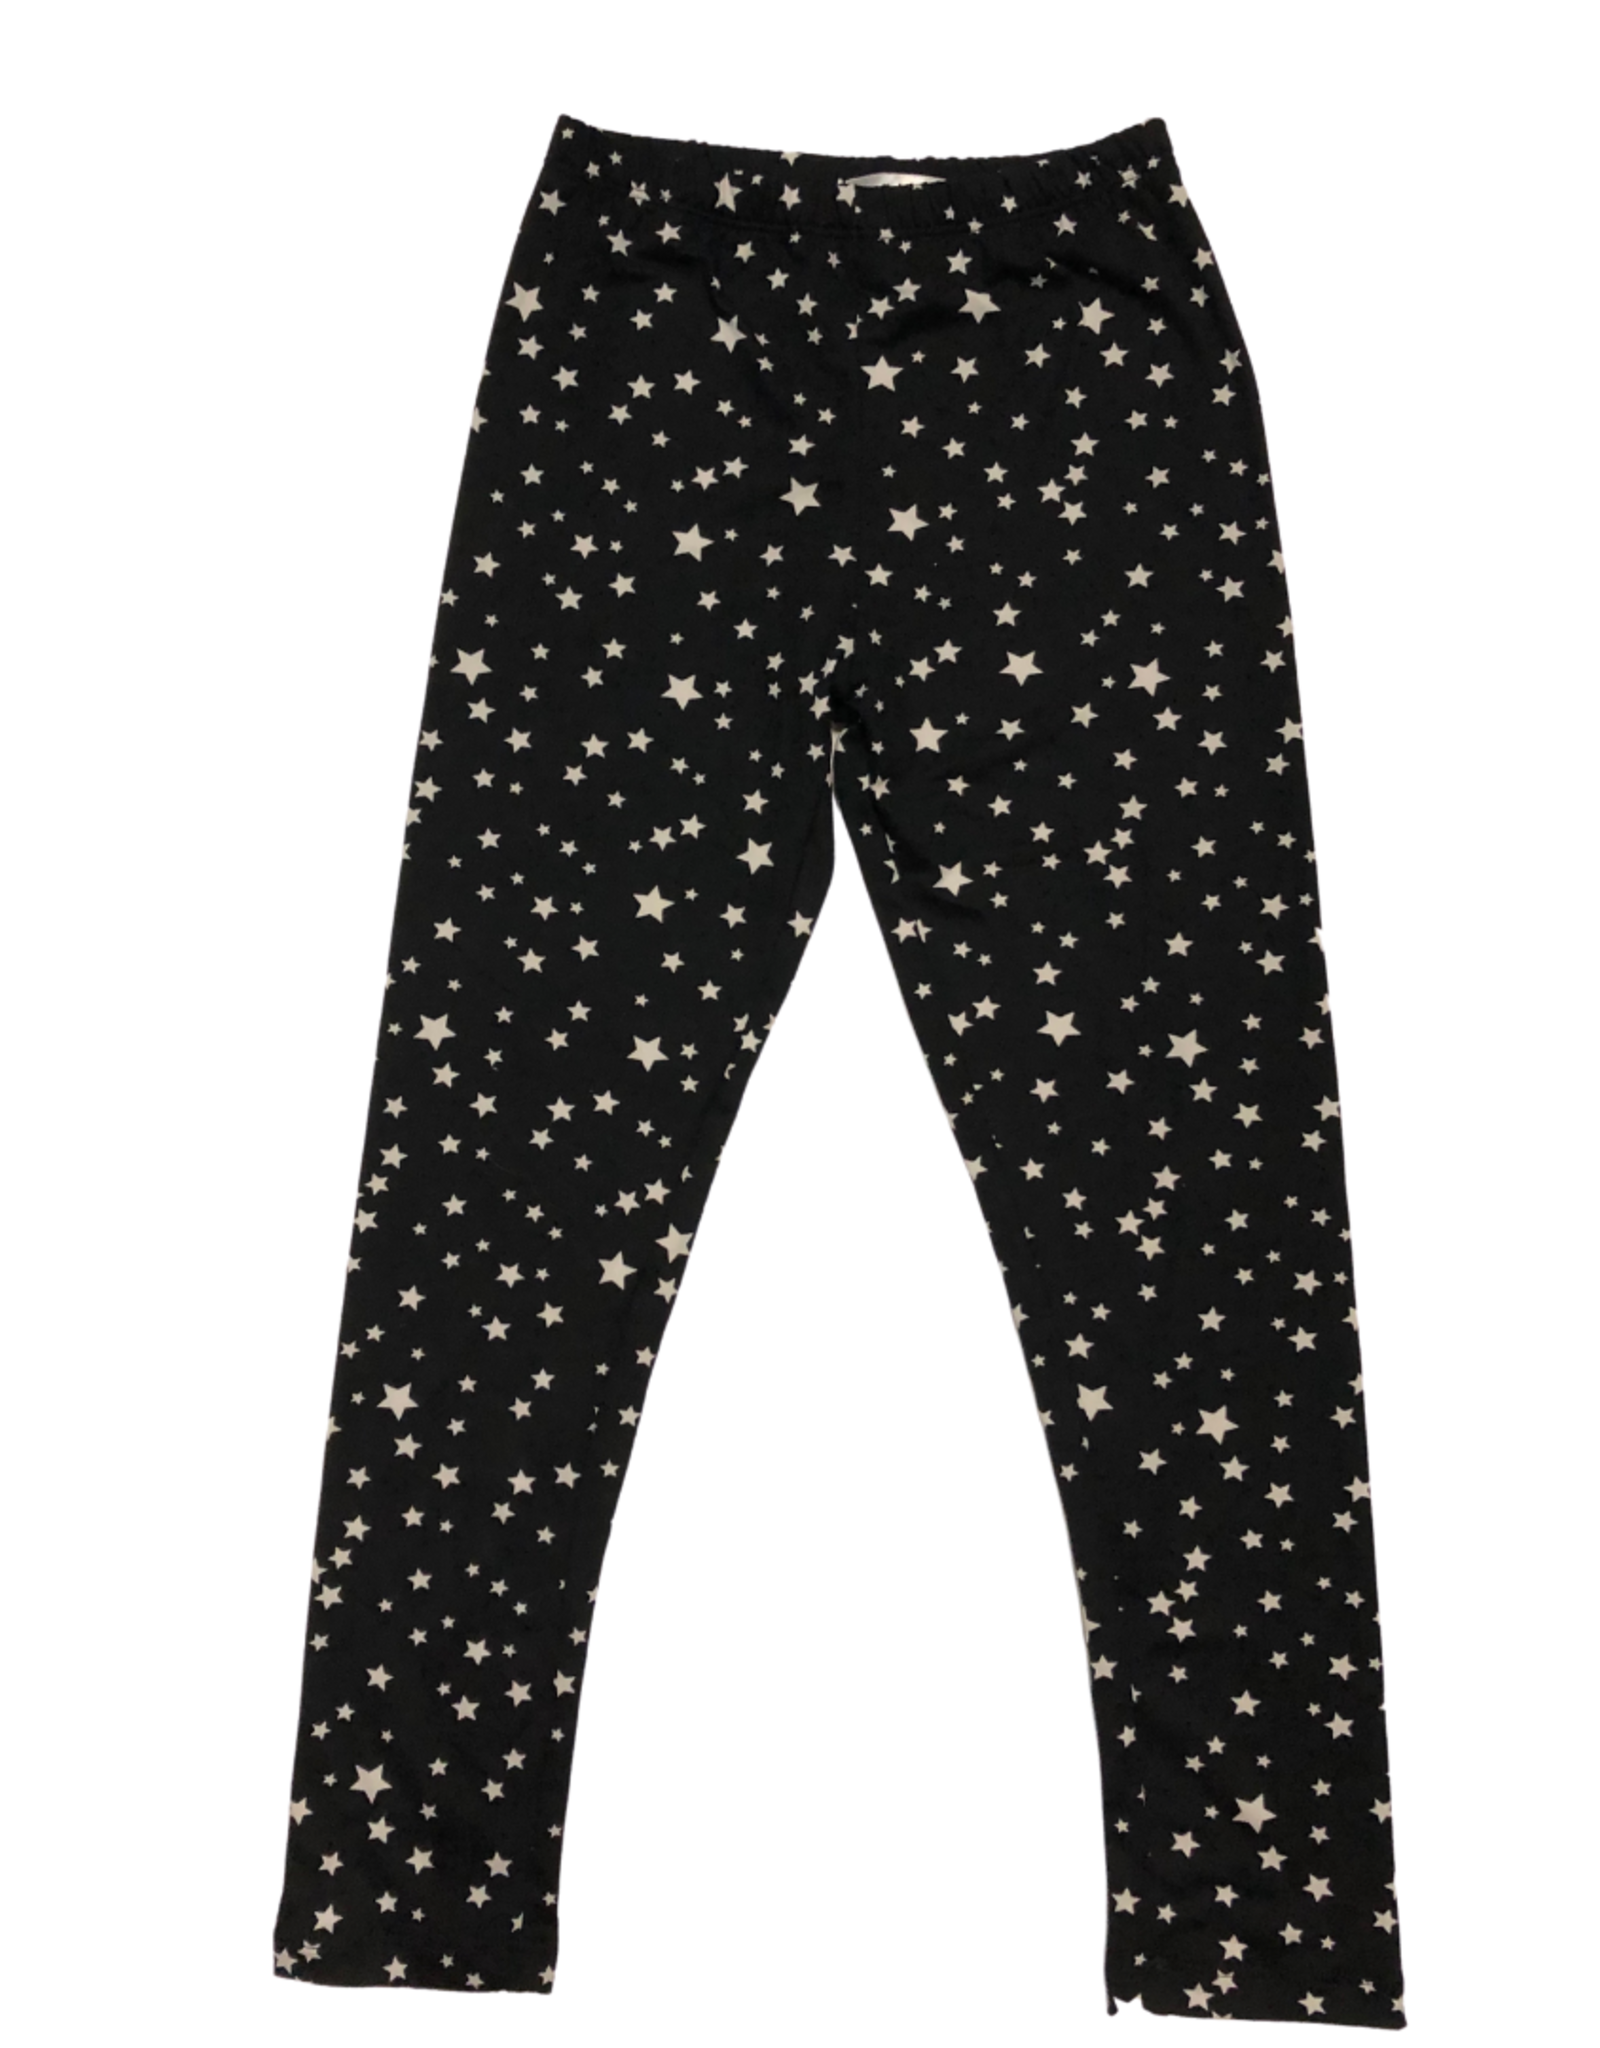 Area Code 407 Madison Star Leggings